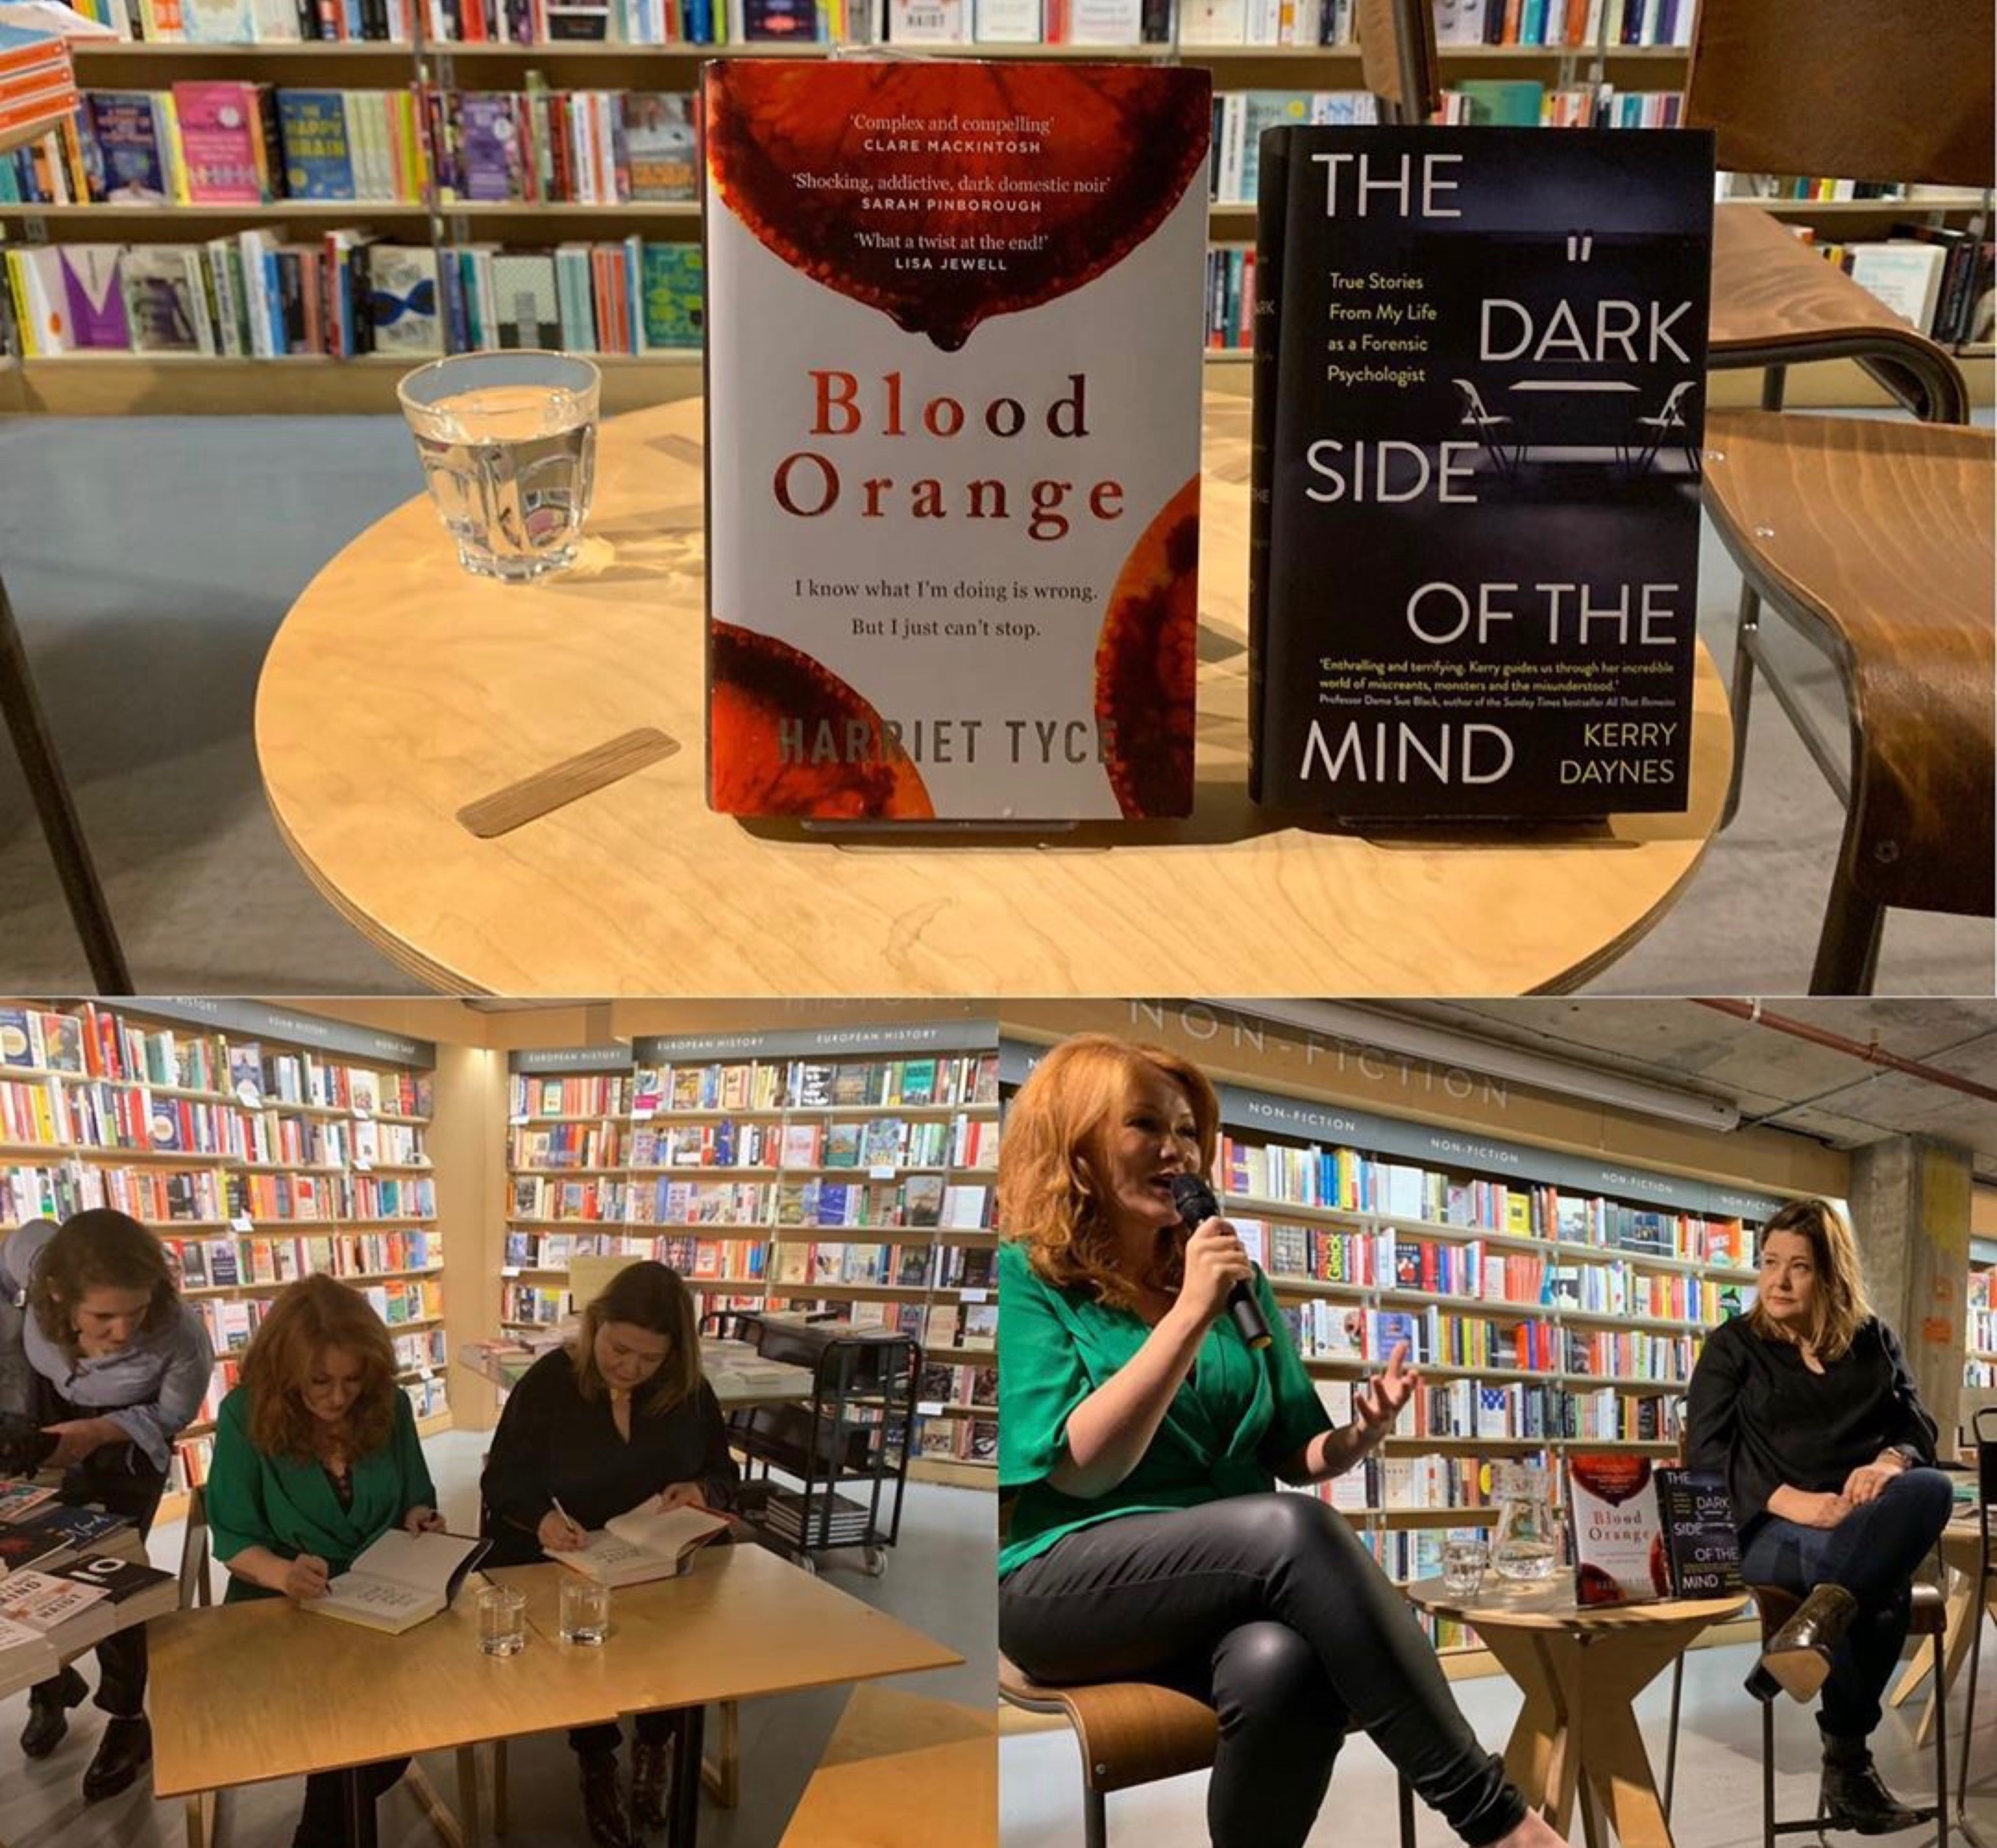 Kerry Daynes and Harriet Tyce at Waterstones Tottenham Court Road (photographs by Jemma Arvanitis).